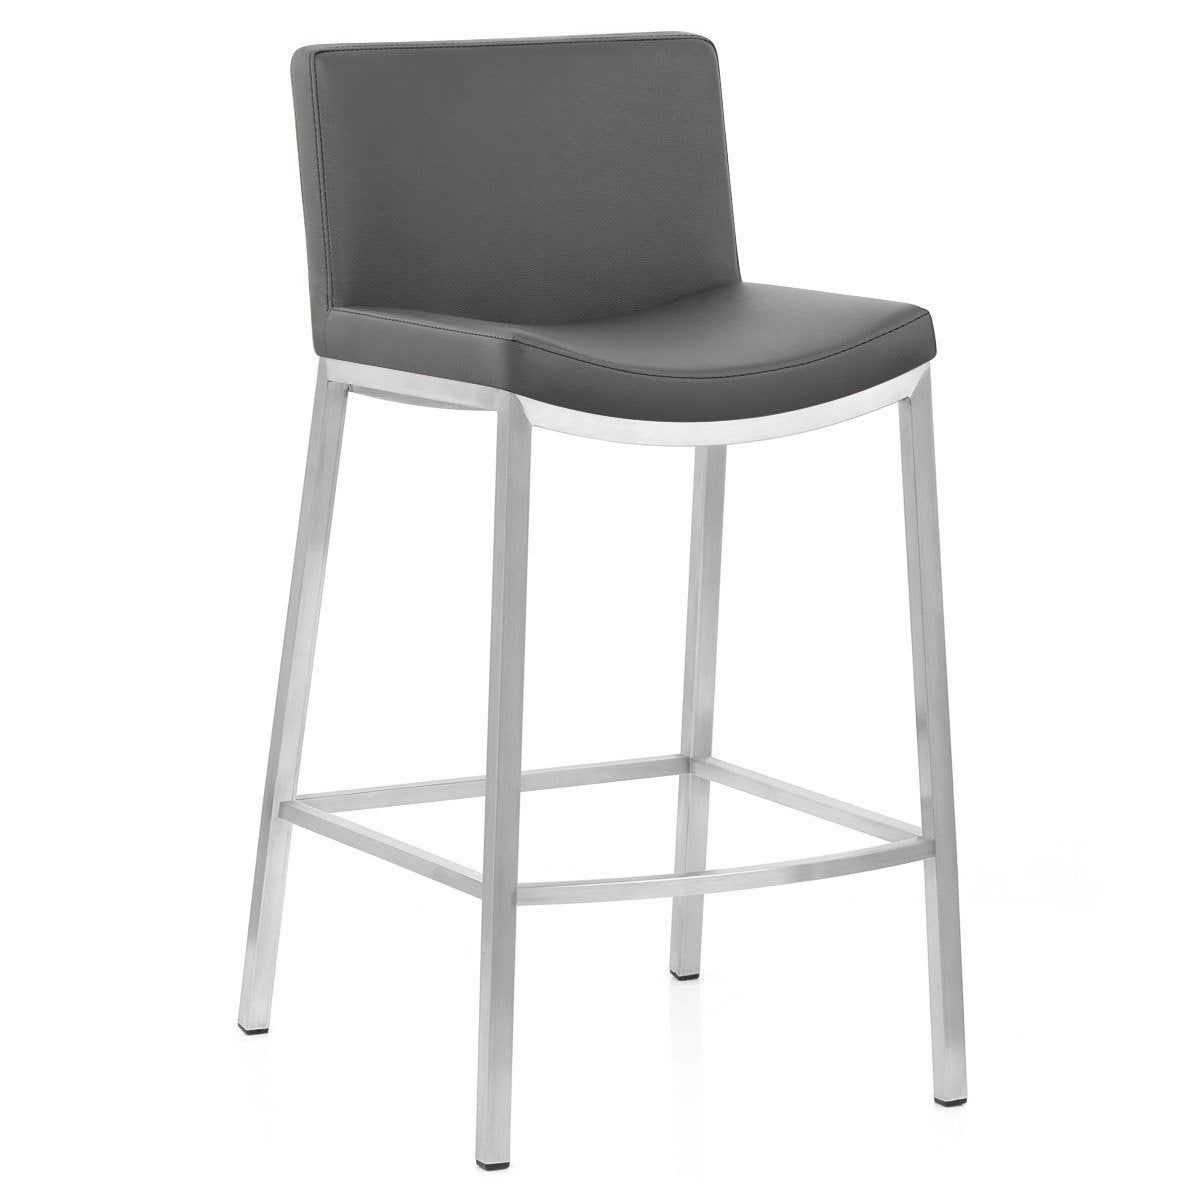 Tabouret De Bar Design Simili Cuir Gris Capone Mdt Tabouret De Bar Design Tabouret Et Chaise Bar